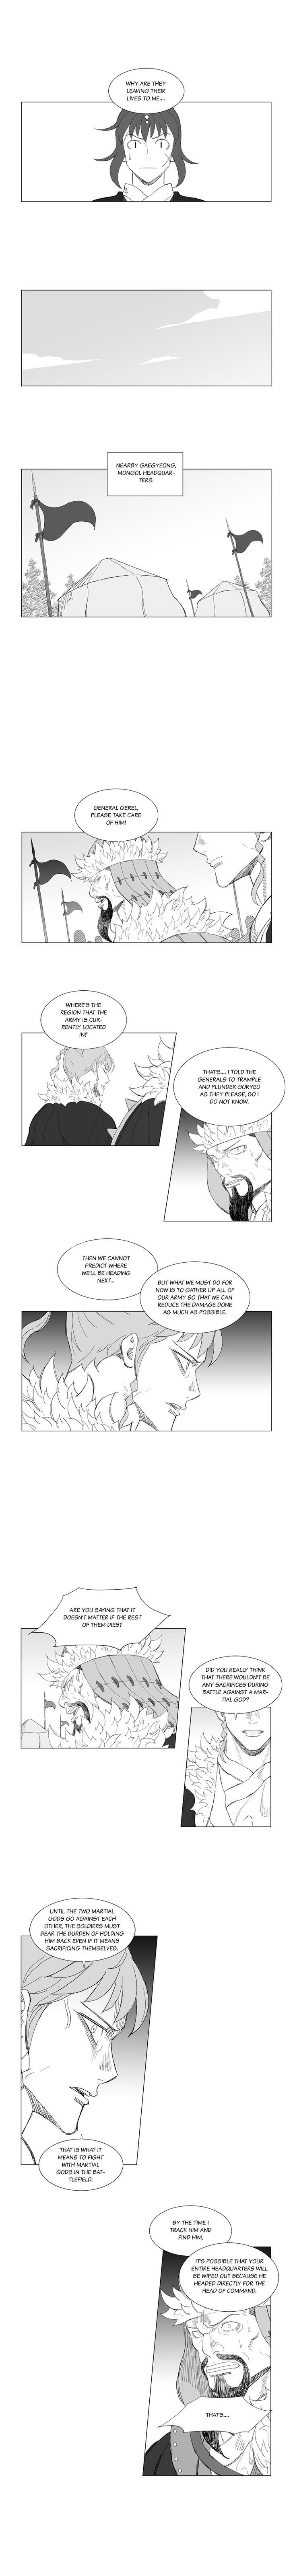 Mujang - Chapter 193